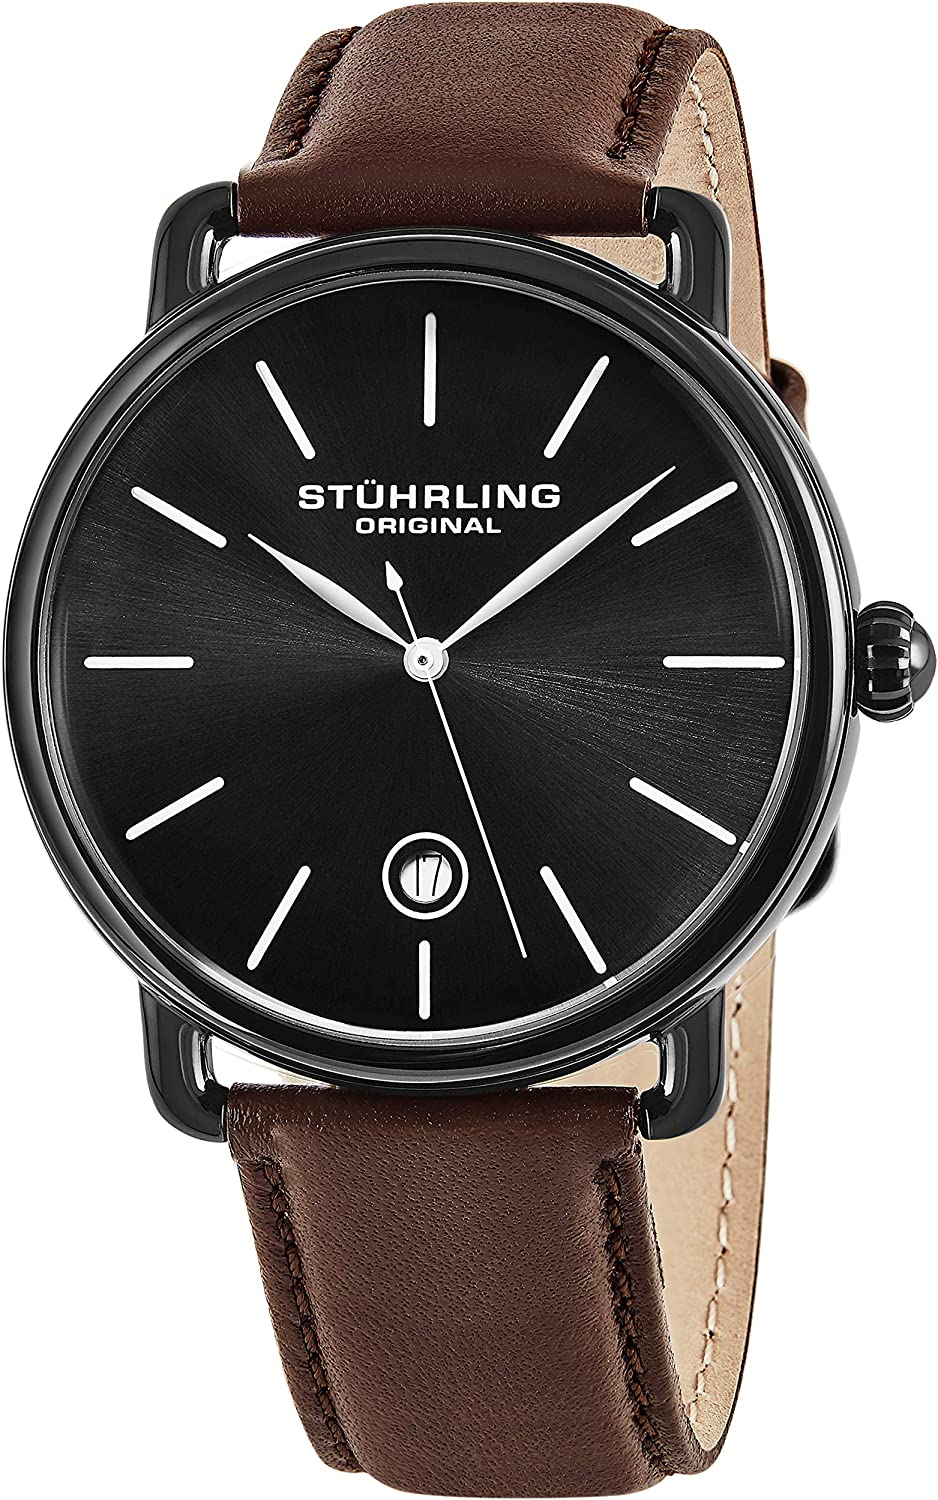 Stuhrling Original Ascot Mens Black Watch – Swiss Quartz Analog Date Wrist Watch for Men – Stainless Steel Mens Designer Watch